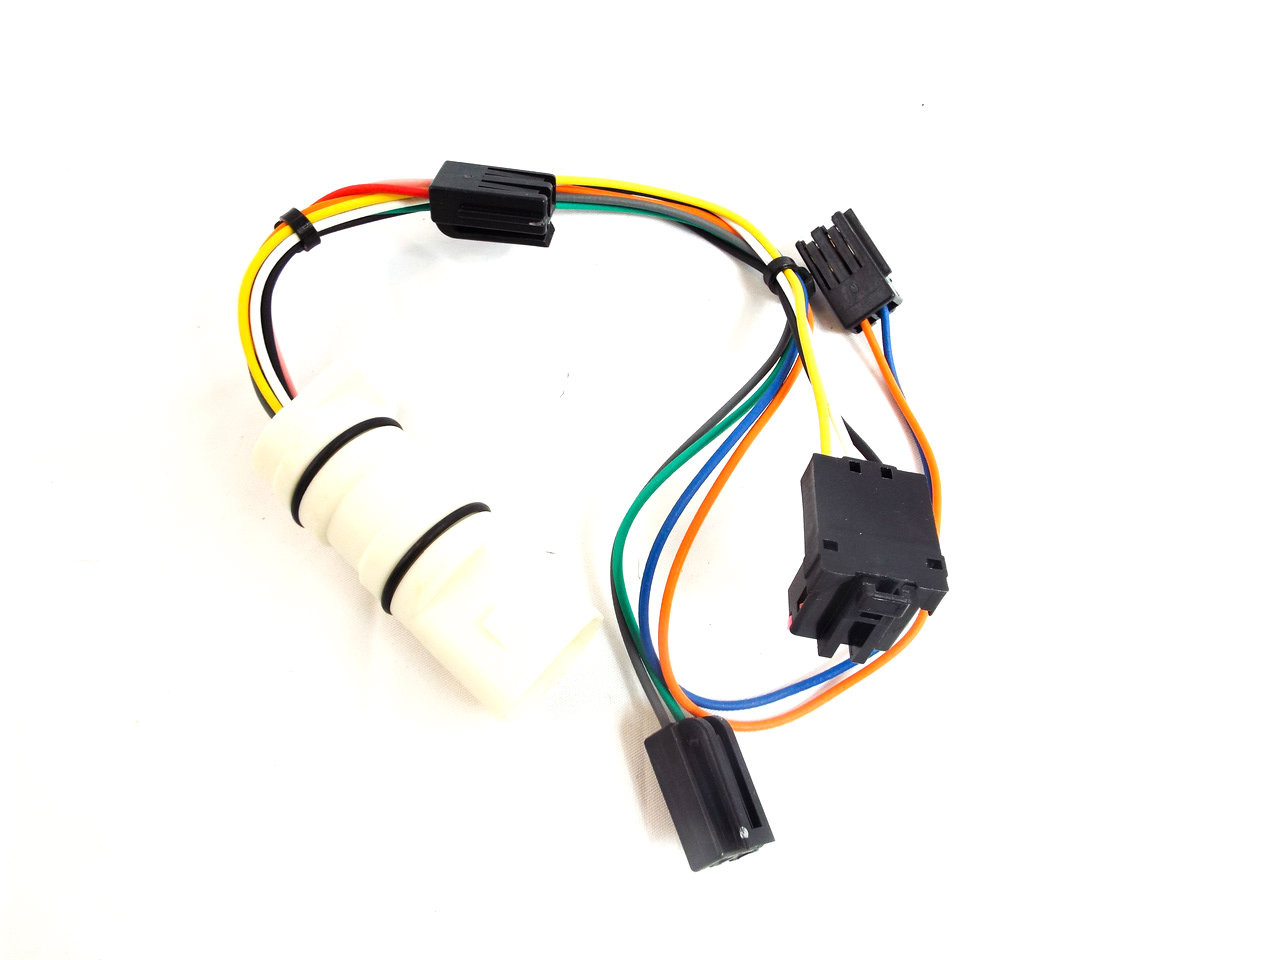 hight resolution of ford aode 4r70w internal wiring harness w case connector f2vy 7g276 aaode wiring harness 7